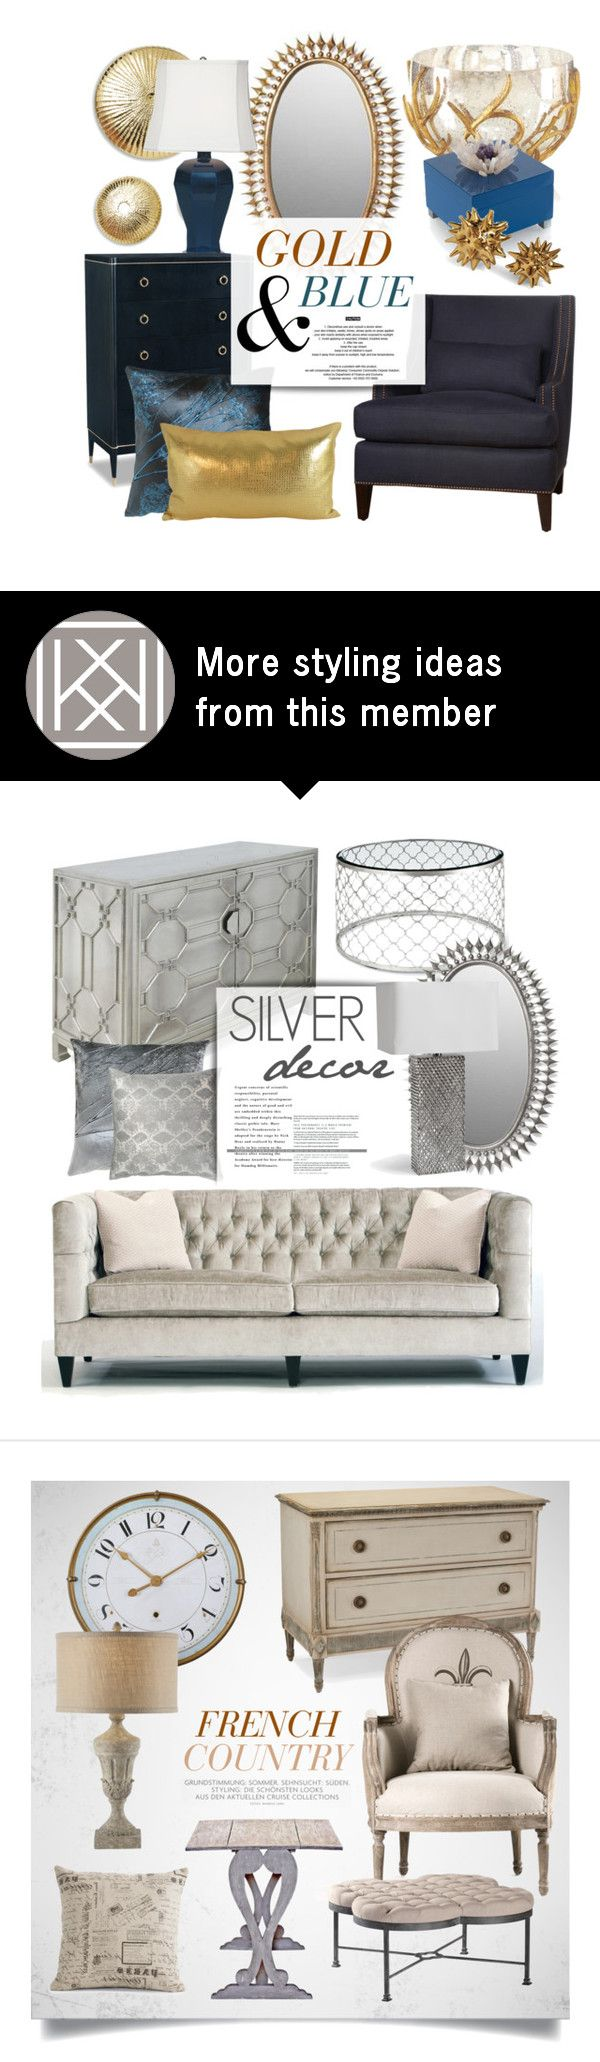 204 best ..MOOD BOARD ..STYLE images on Pinterest | Texture ...